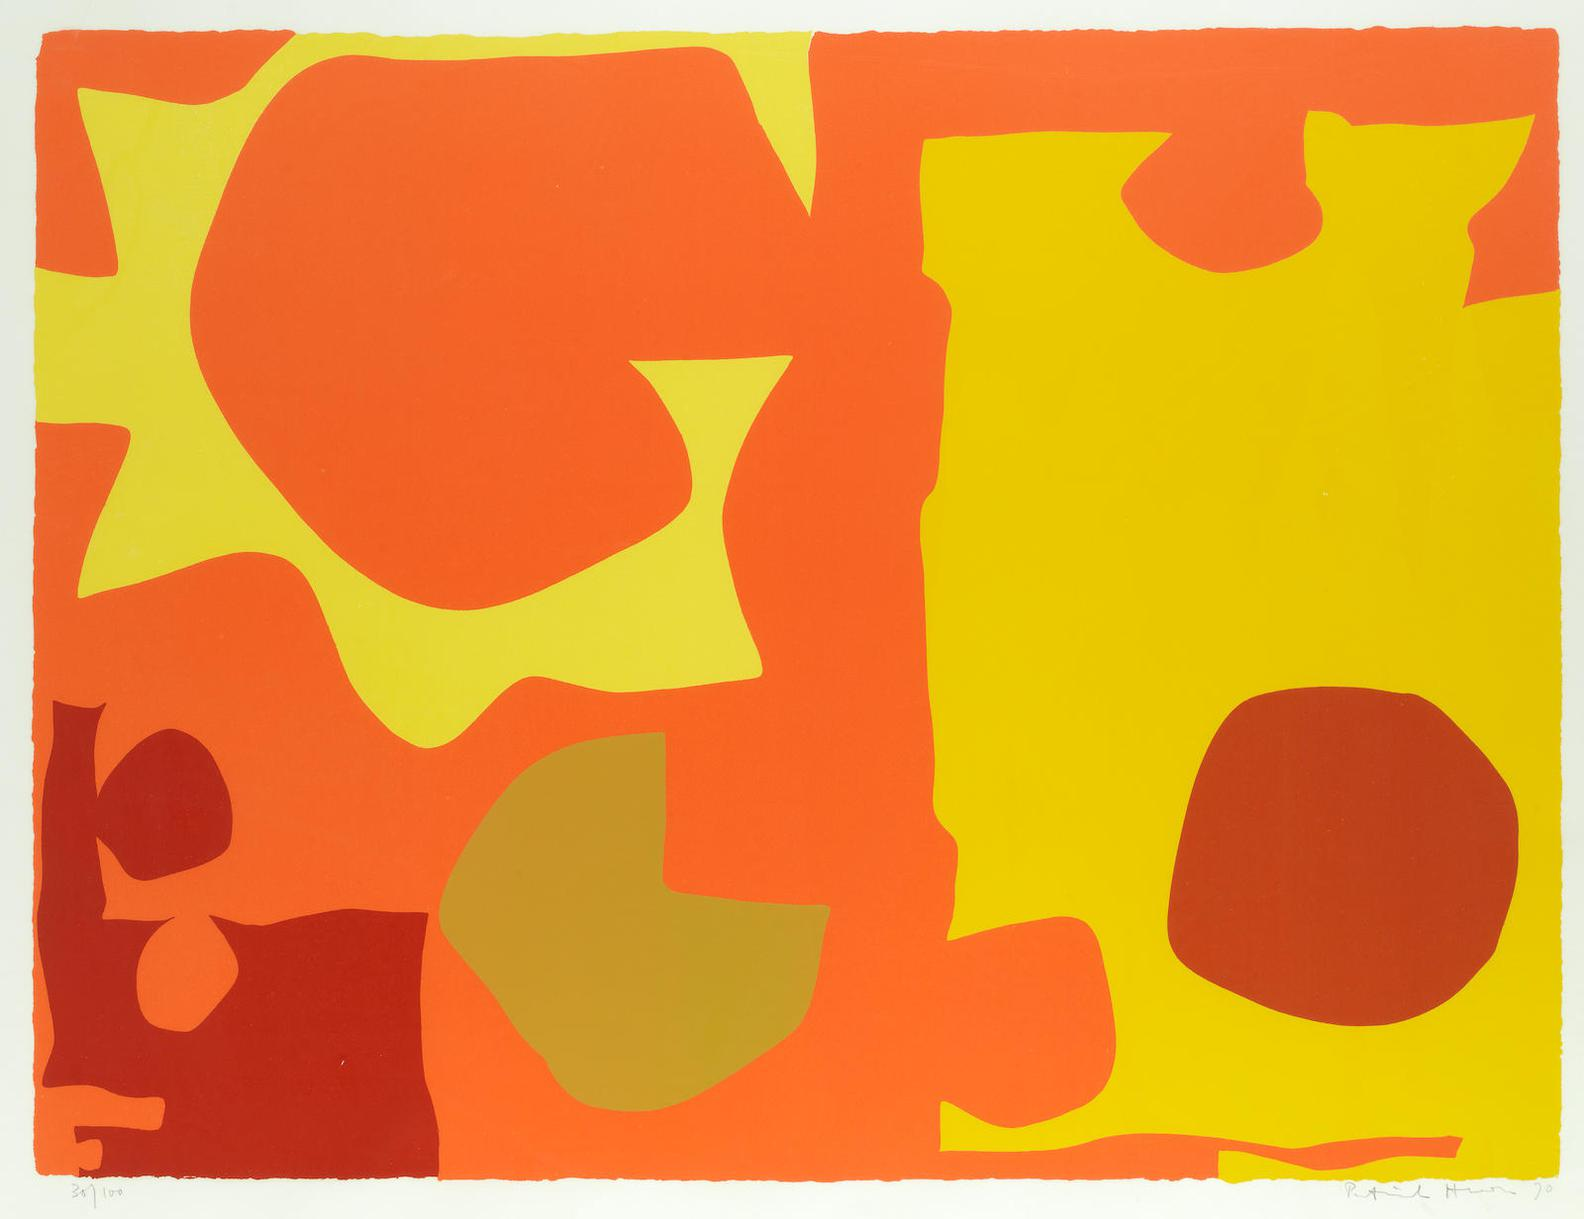 Patrick Heron-Six In Light Orange With Red In Yellow : April 1970-1970